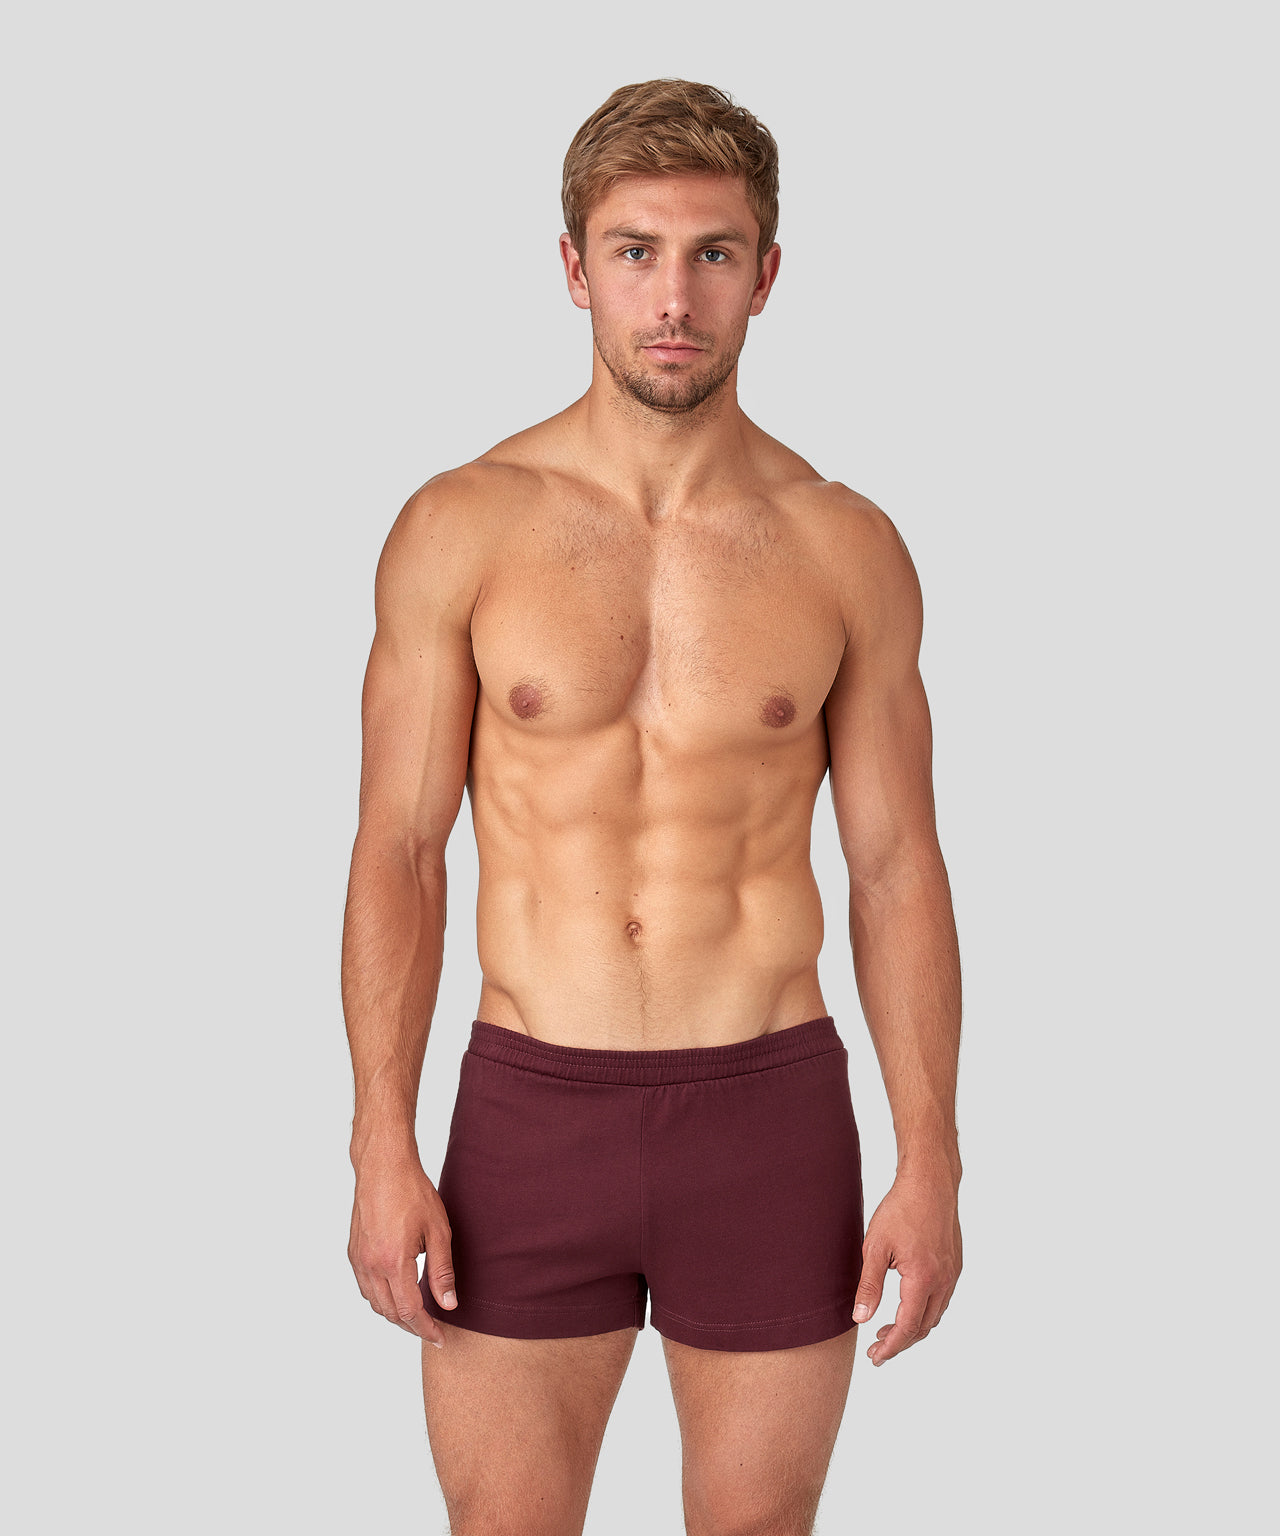 Home Shorts - burgundy red